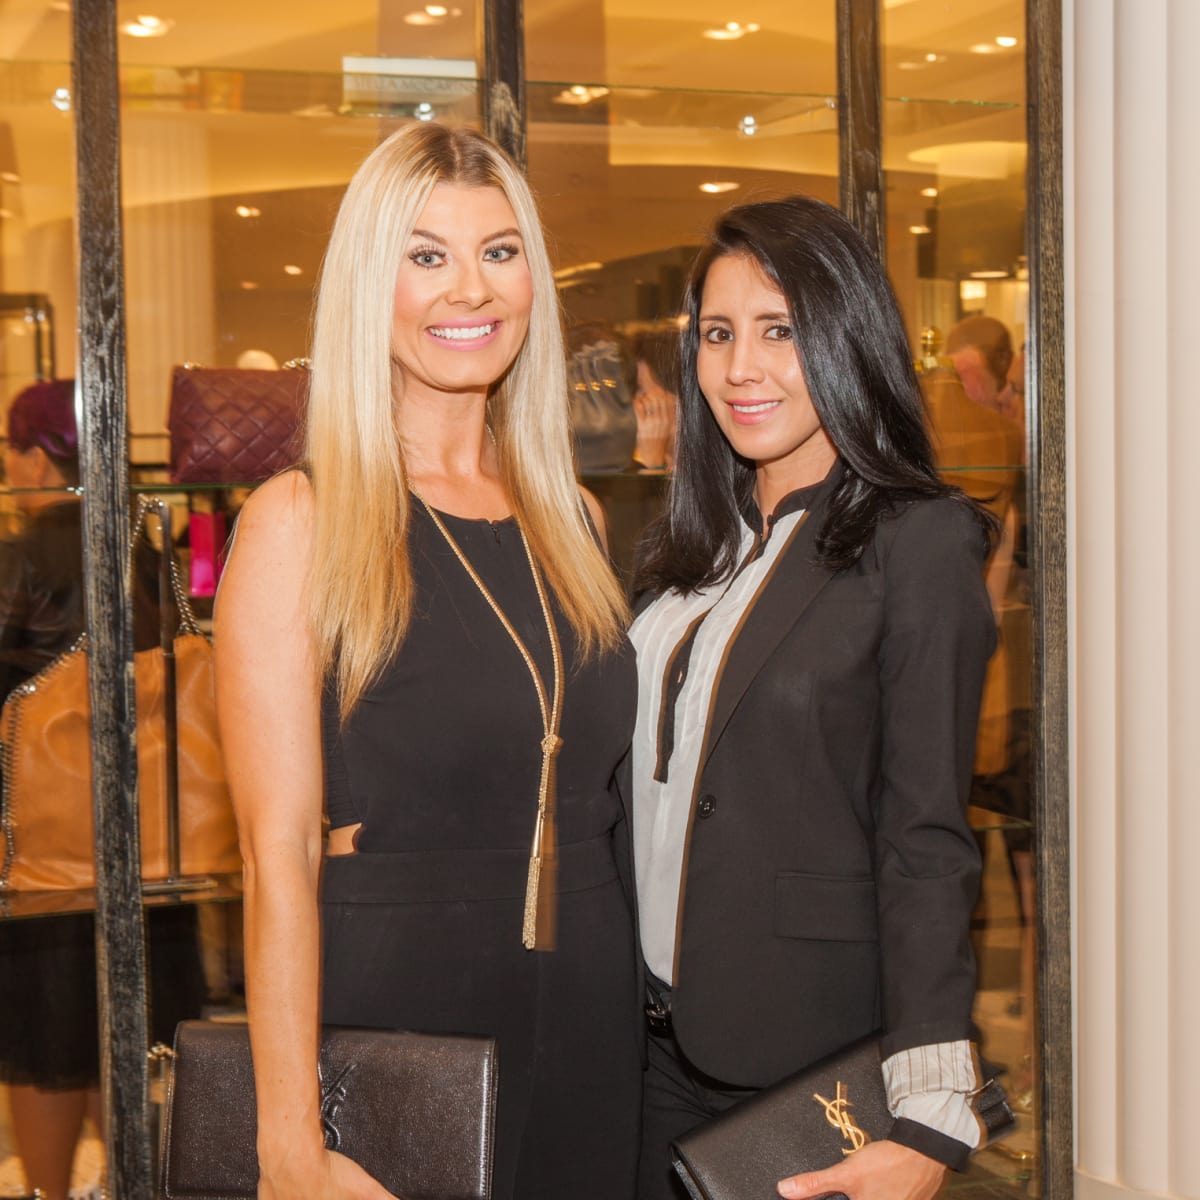 Erika Ballard, Marivel Hernandez at Heart of Fashion kickoff party